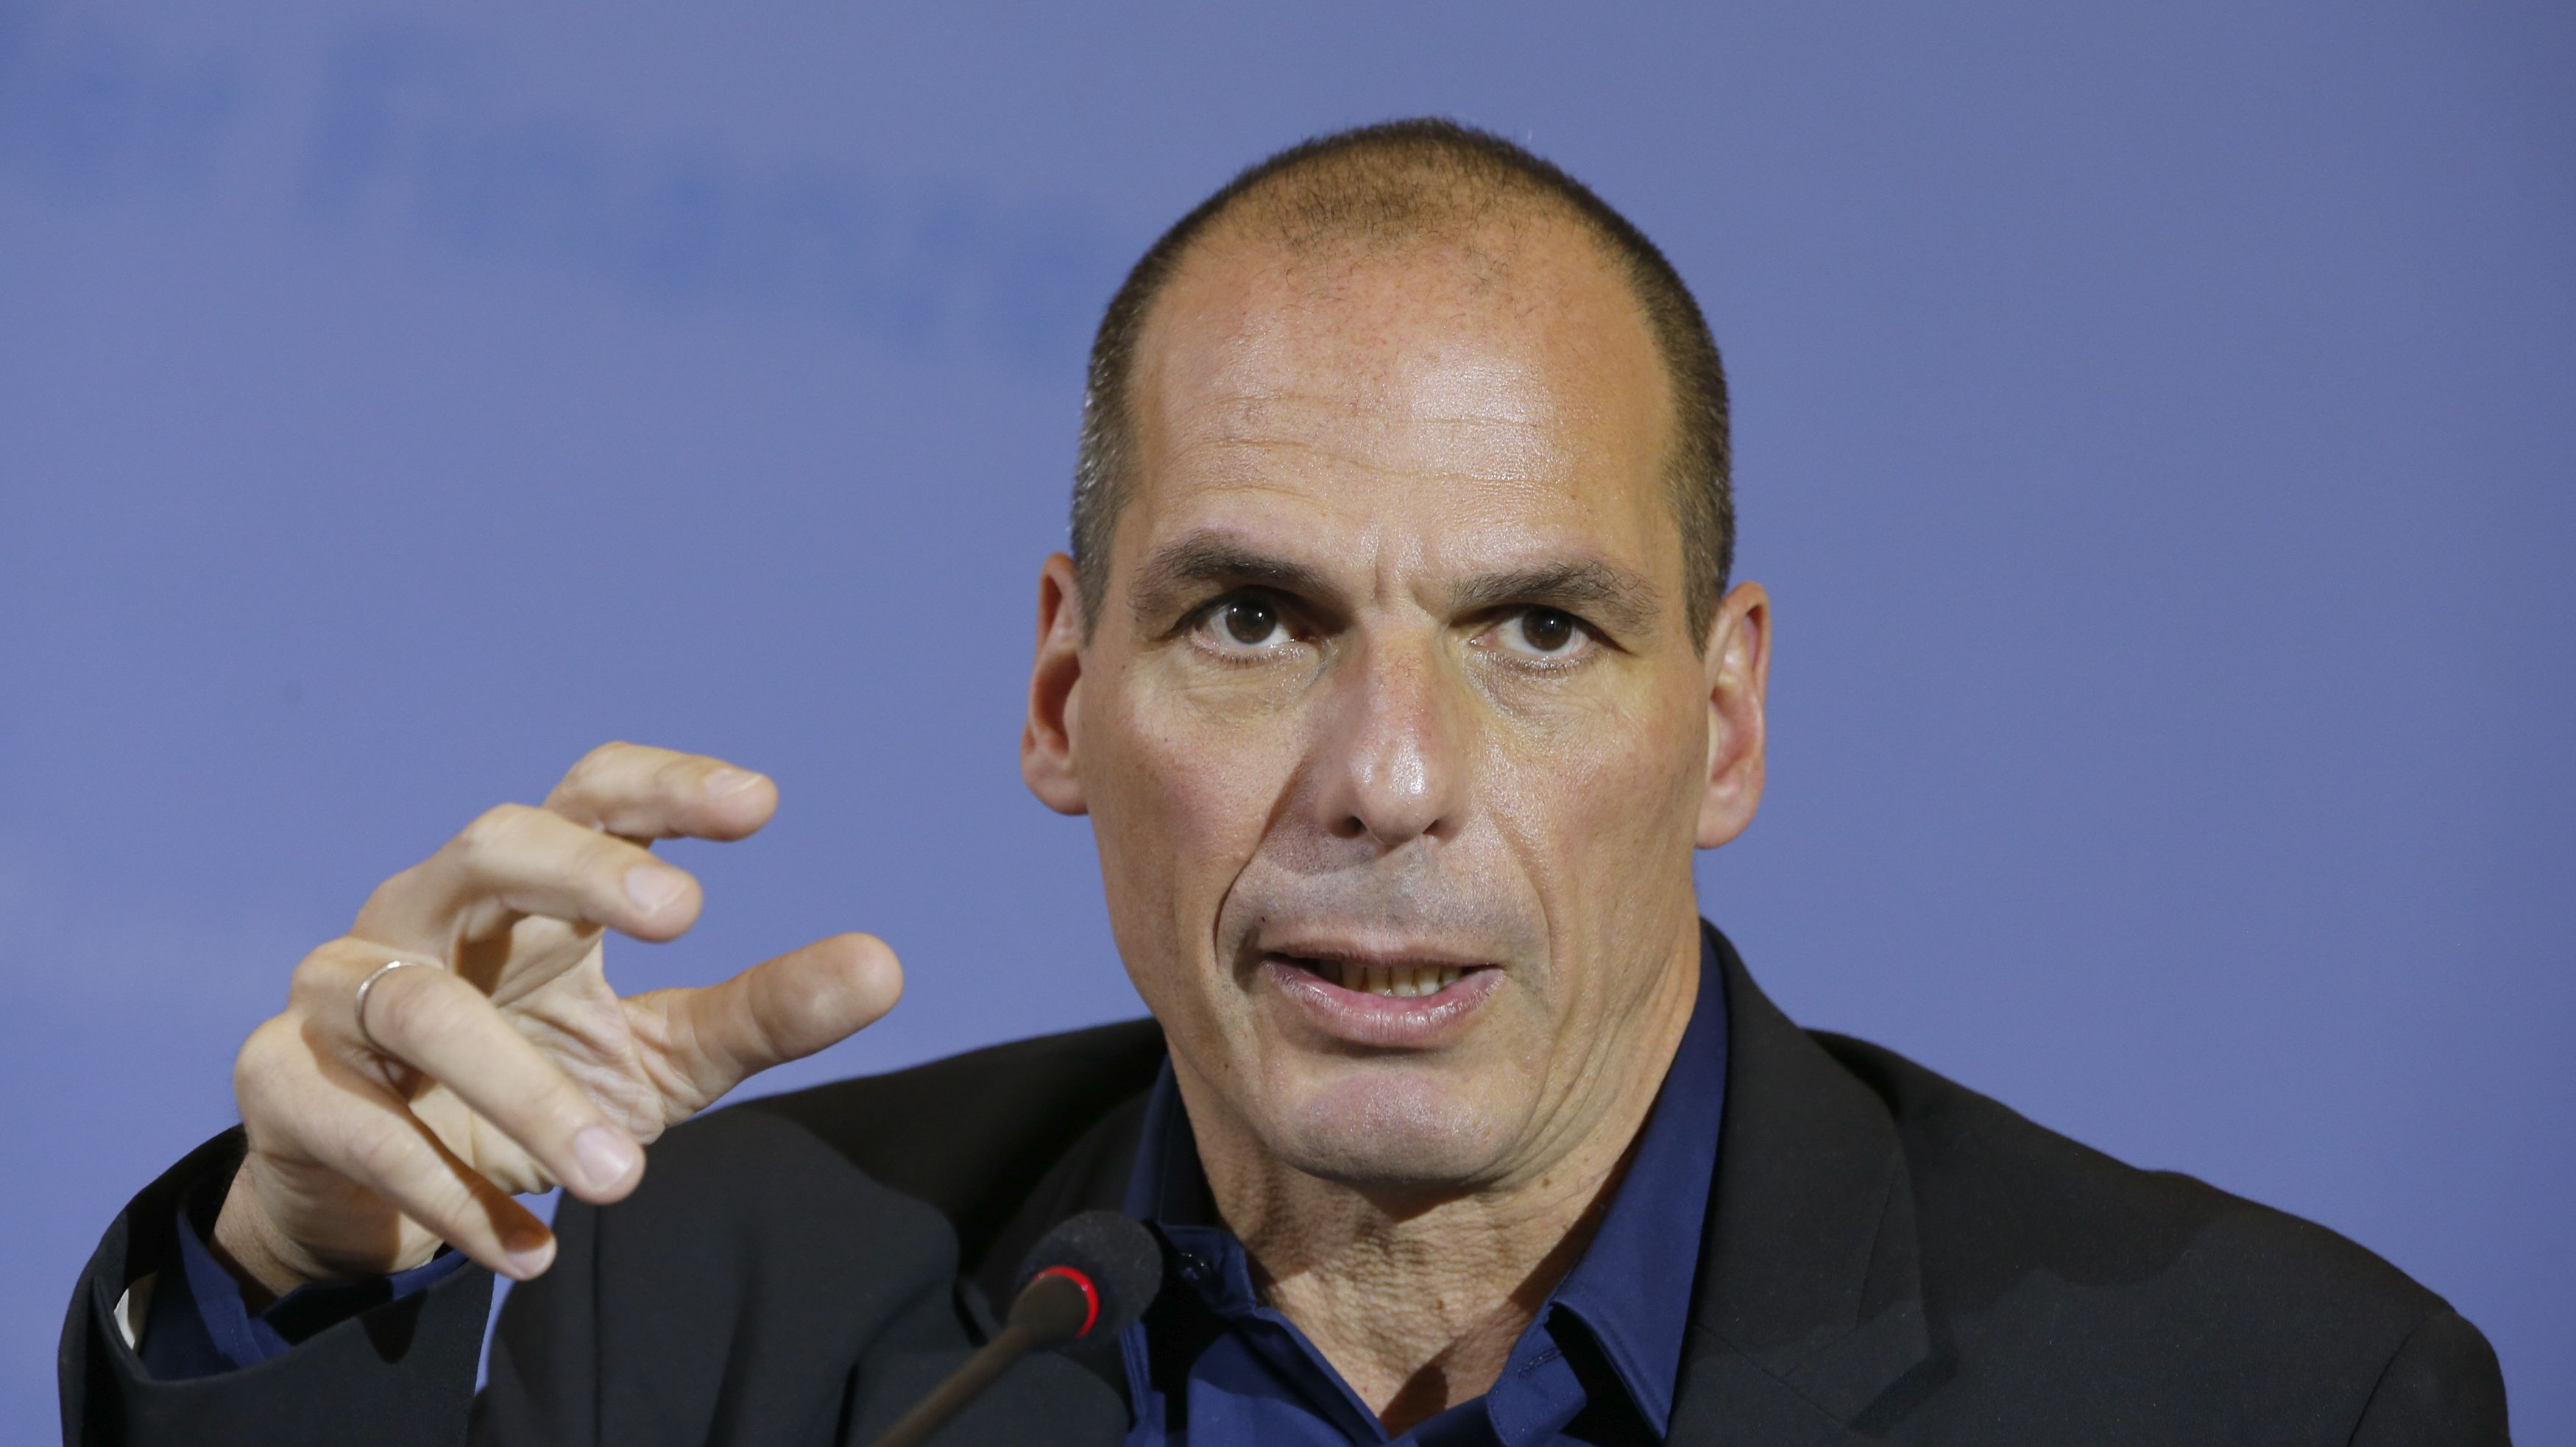 """Greek Finance Minister Yanis Varoufakis addresses a news conference following talks with German Finance Minister Wolfgang Schaeuble, at the finance ministry in Berlin February 5, 2015. The Greek and German finance ministers could """"not even agree to disagree"""" at their meeting on Thursday about the new government in Athens' plans to renegotiate Greece's debt and halt austerity measures prescribed by Berlin, the Greek minister said.       REUTERS/Fabrizio Bensch (GERMANY  - Tags: BUSINESS POLITICS HEADSHOT)   - RTR4OC9O"""